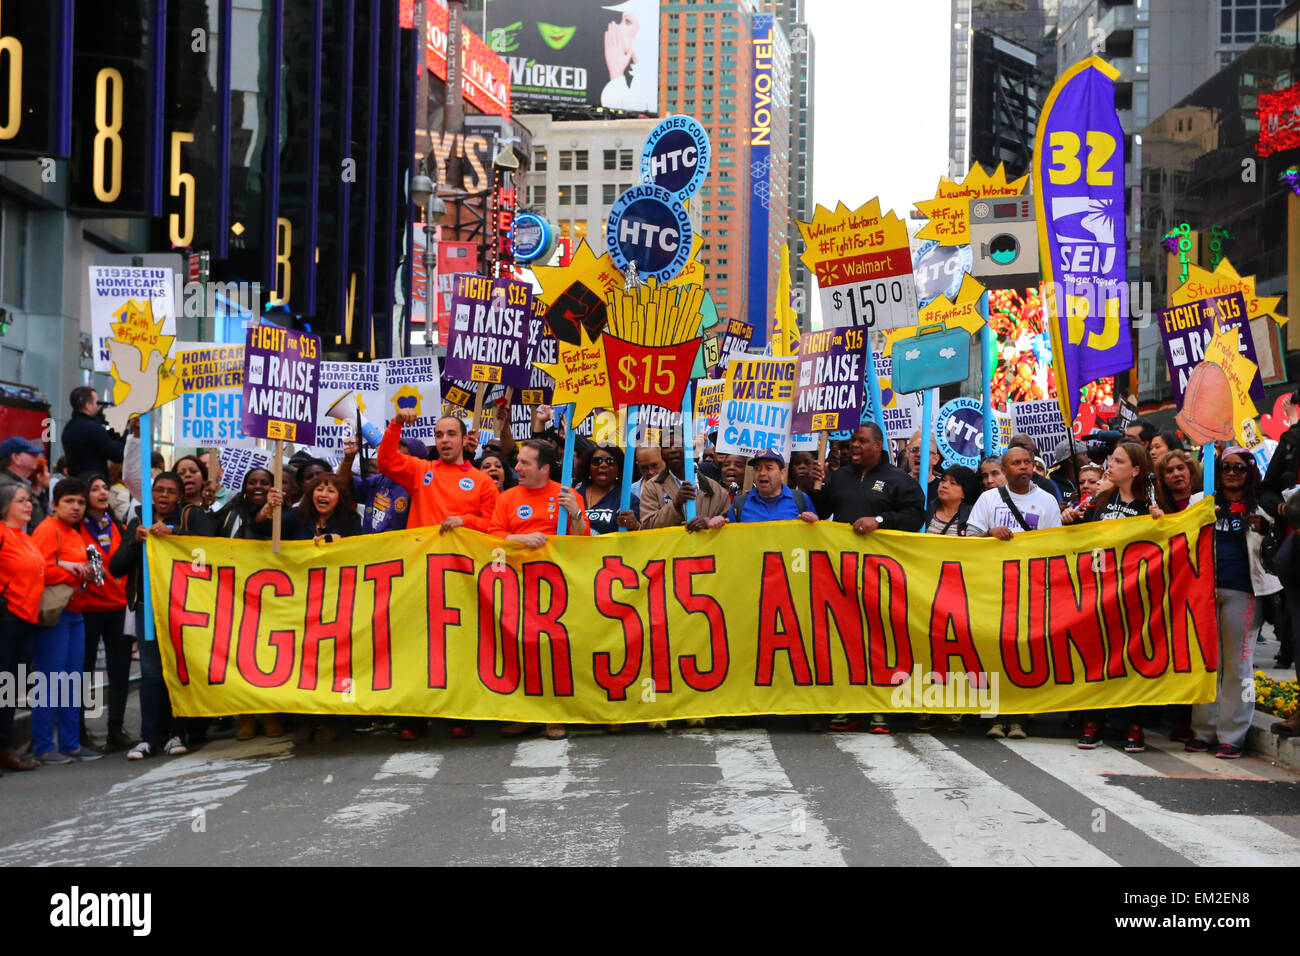 Activists in Times Square unfurl a large banner 'Fight for $15 And A Union' - Stock Image